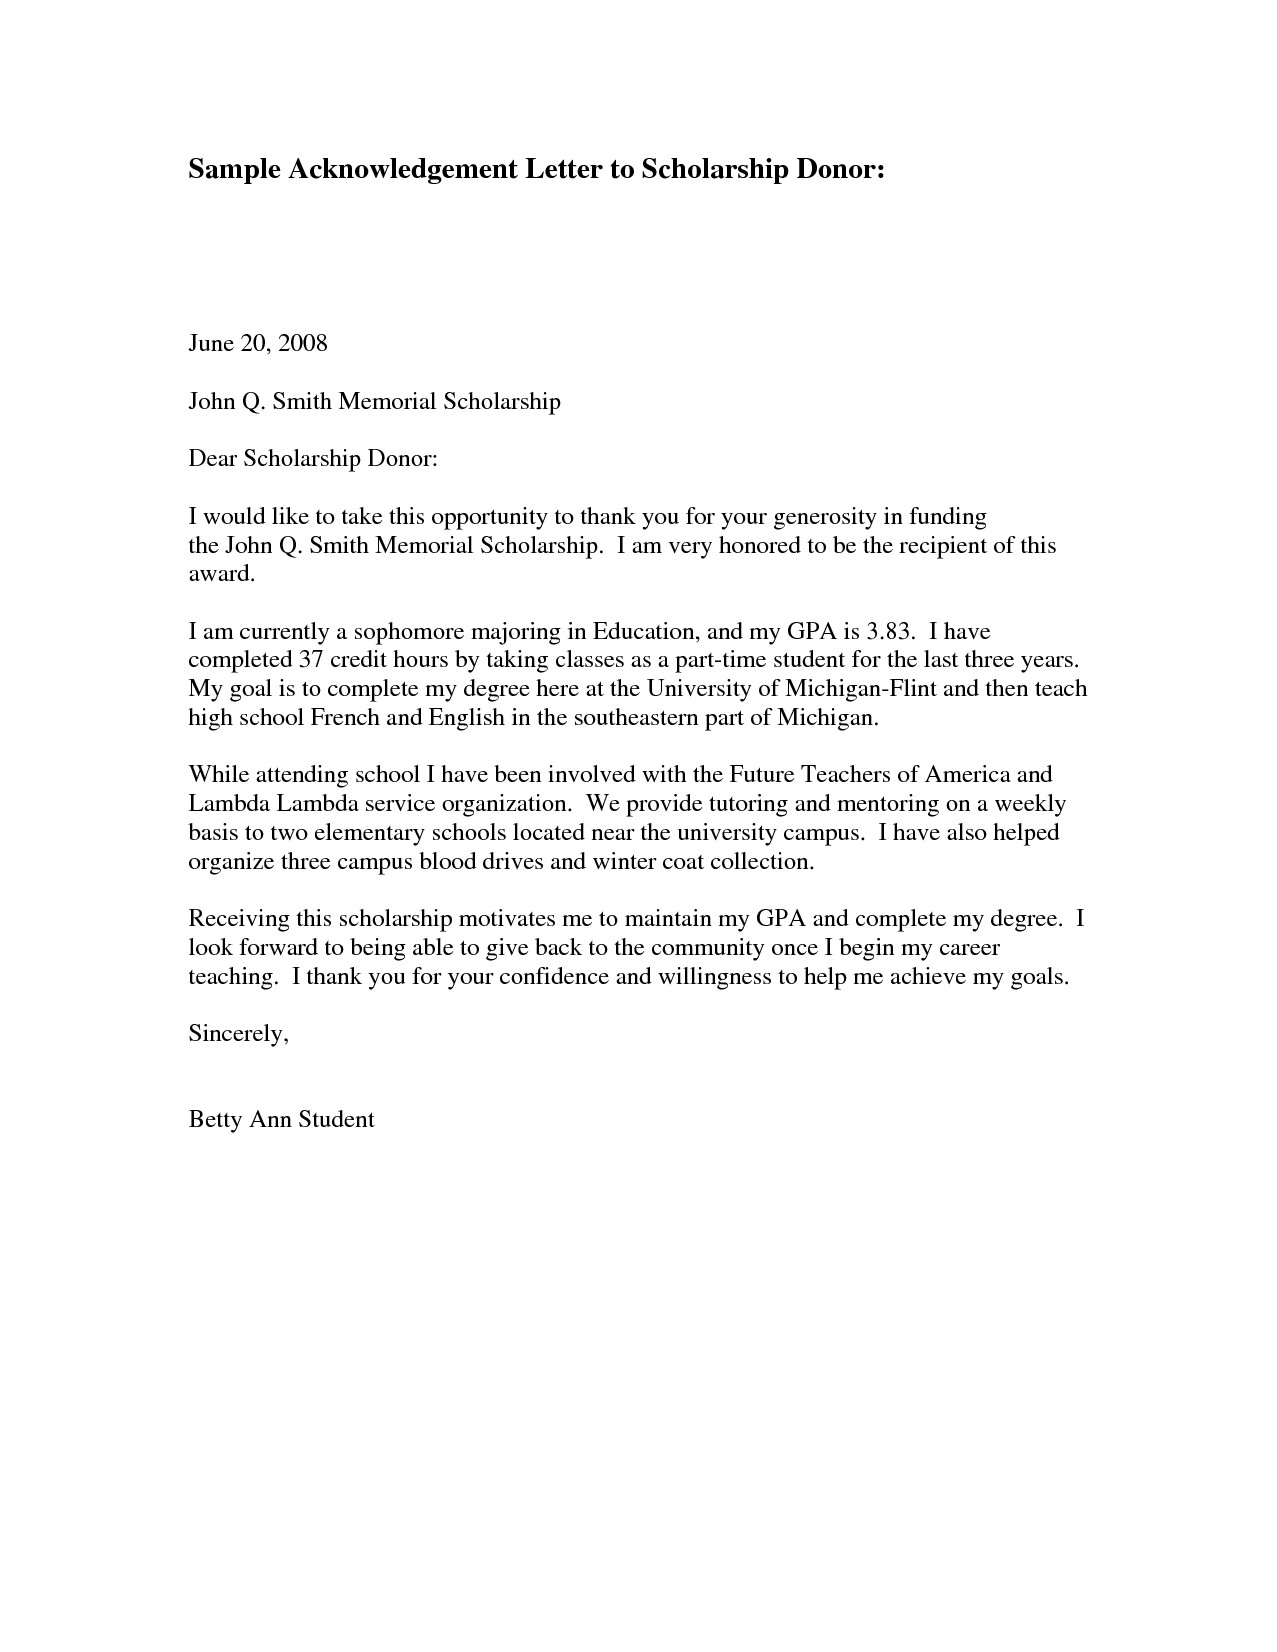 Donor Thank You Letter Template - Scholarship Thank You Letter Sample Http Jobsearch About Od